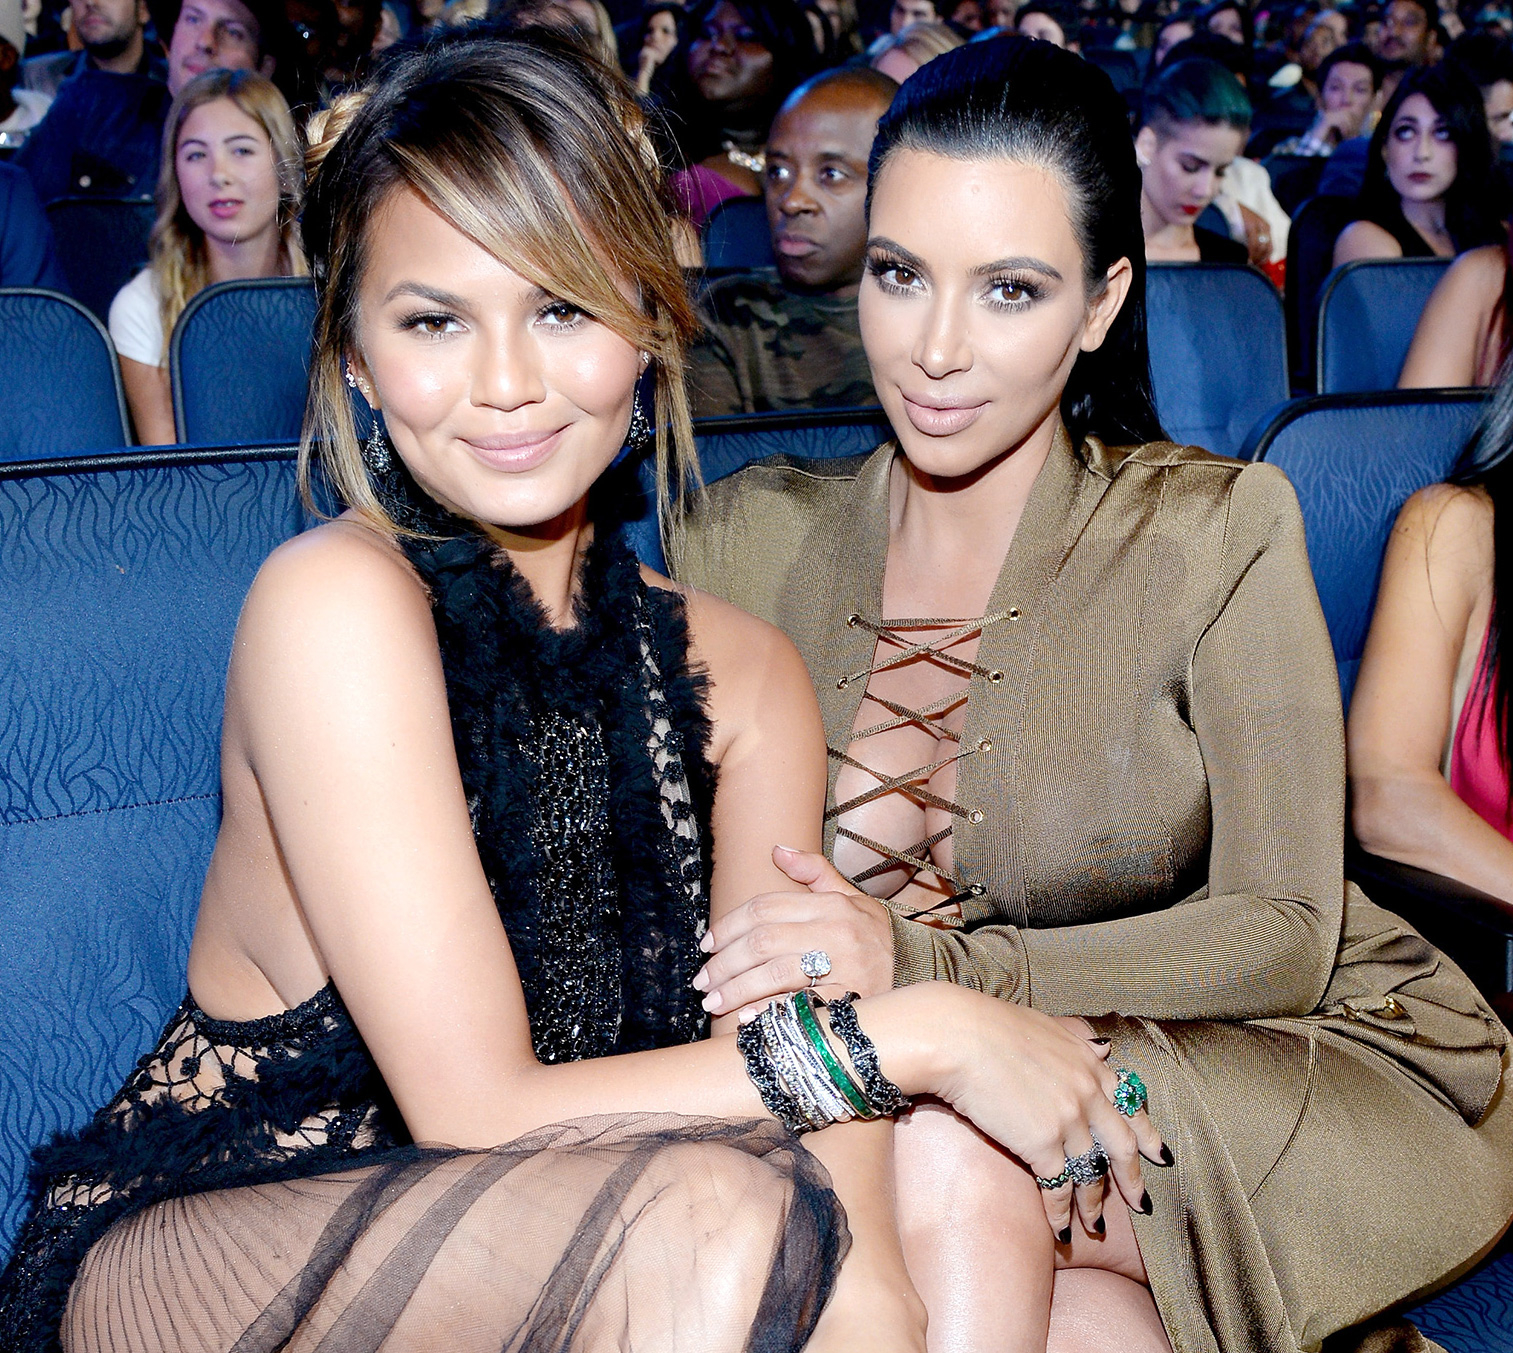 Chrissy Teigen and Kim Kardashian West